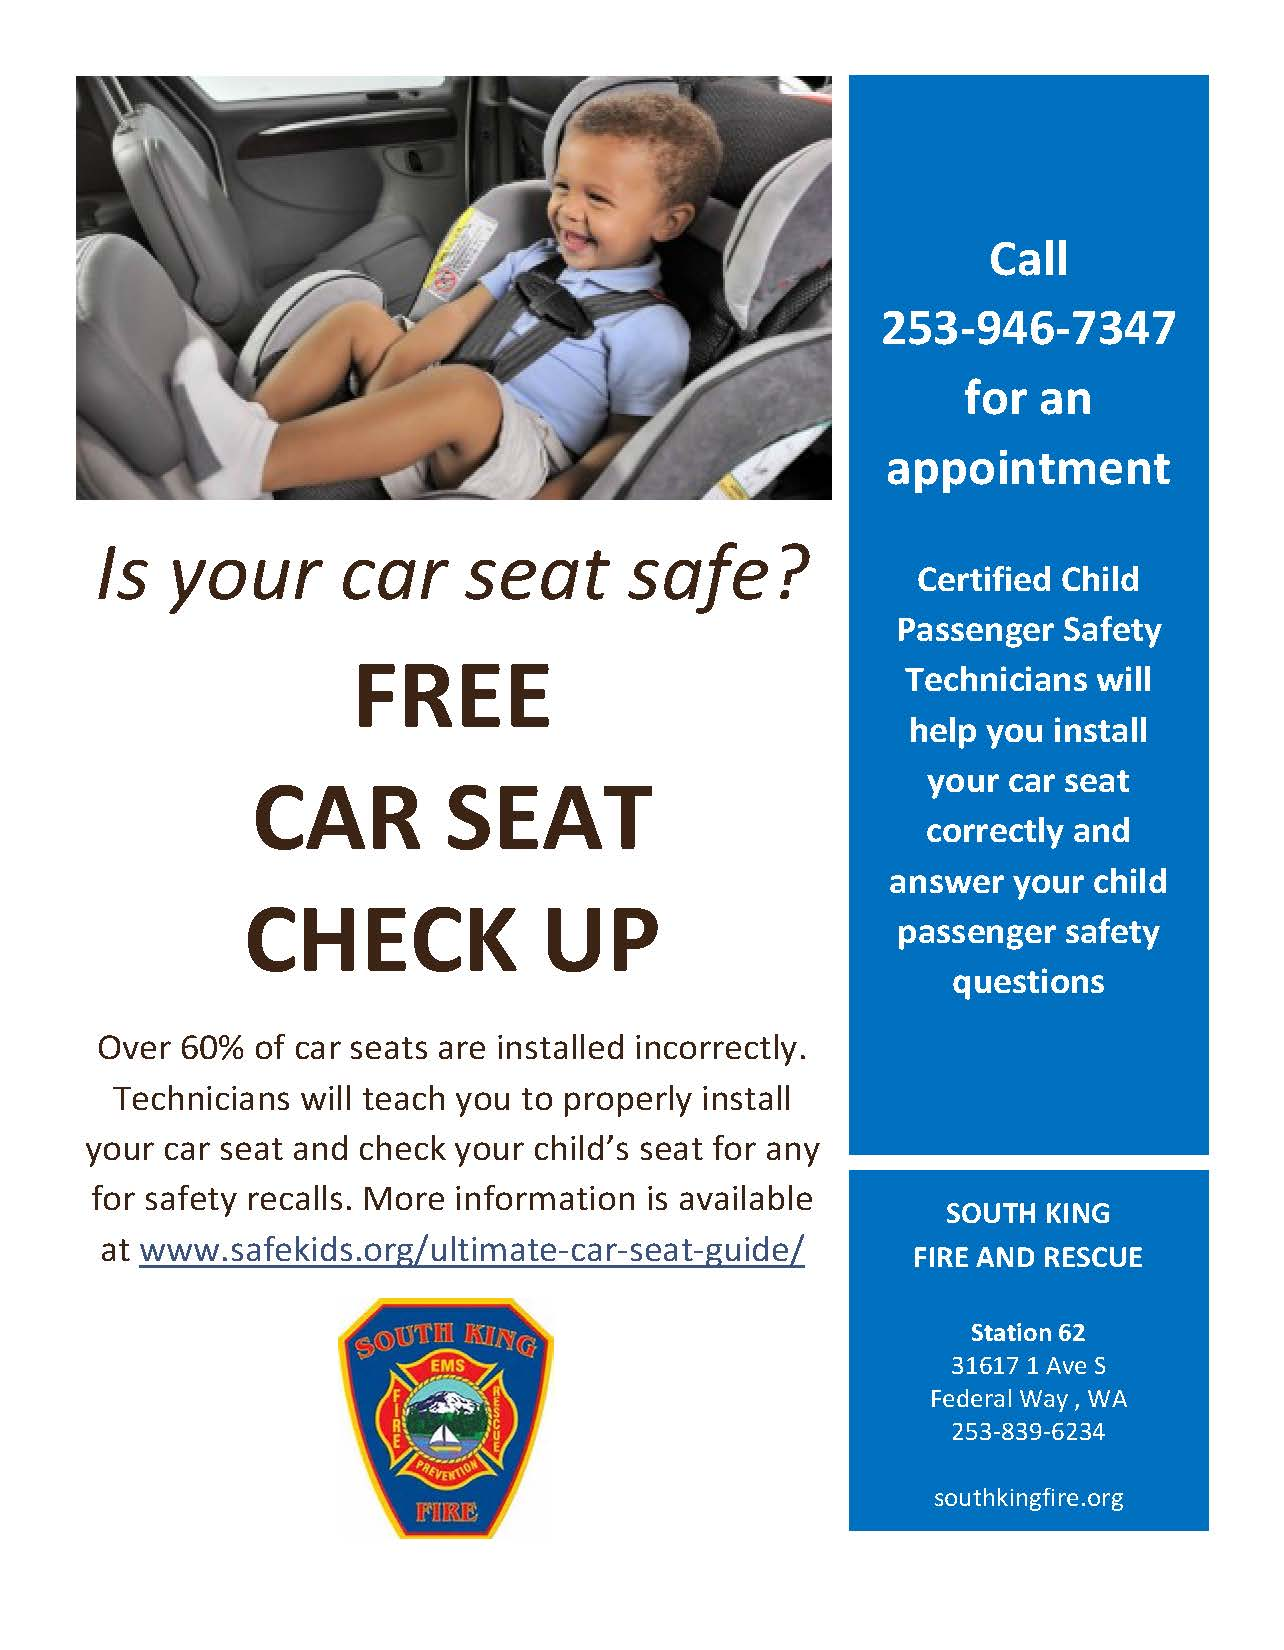 South King Fire car seat check up flyer 2018.jpg